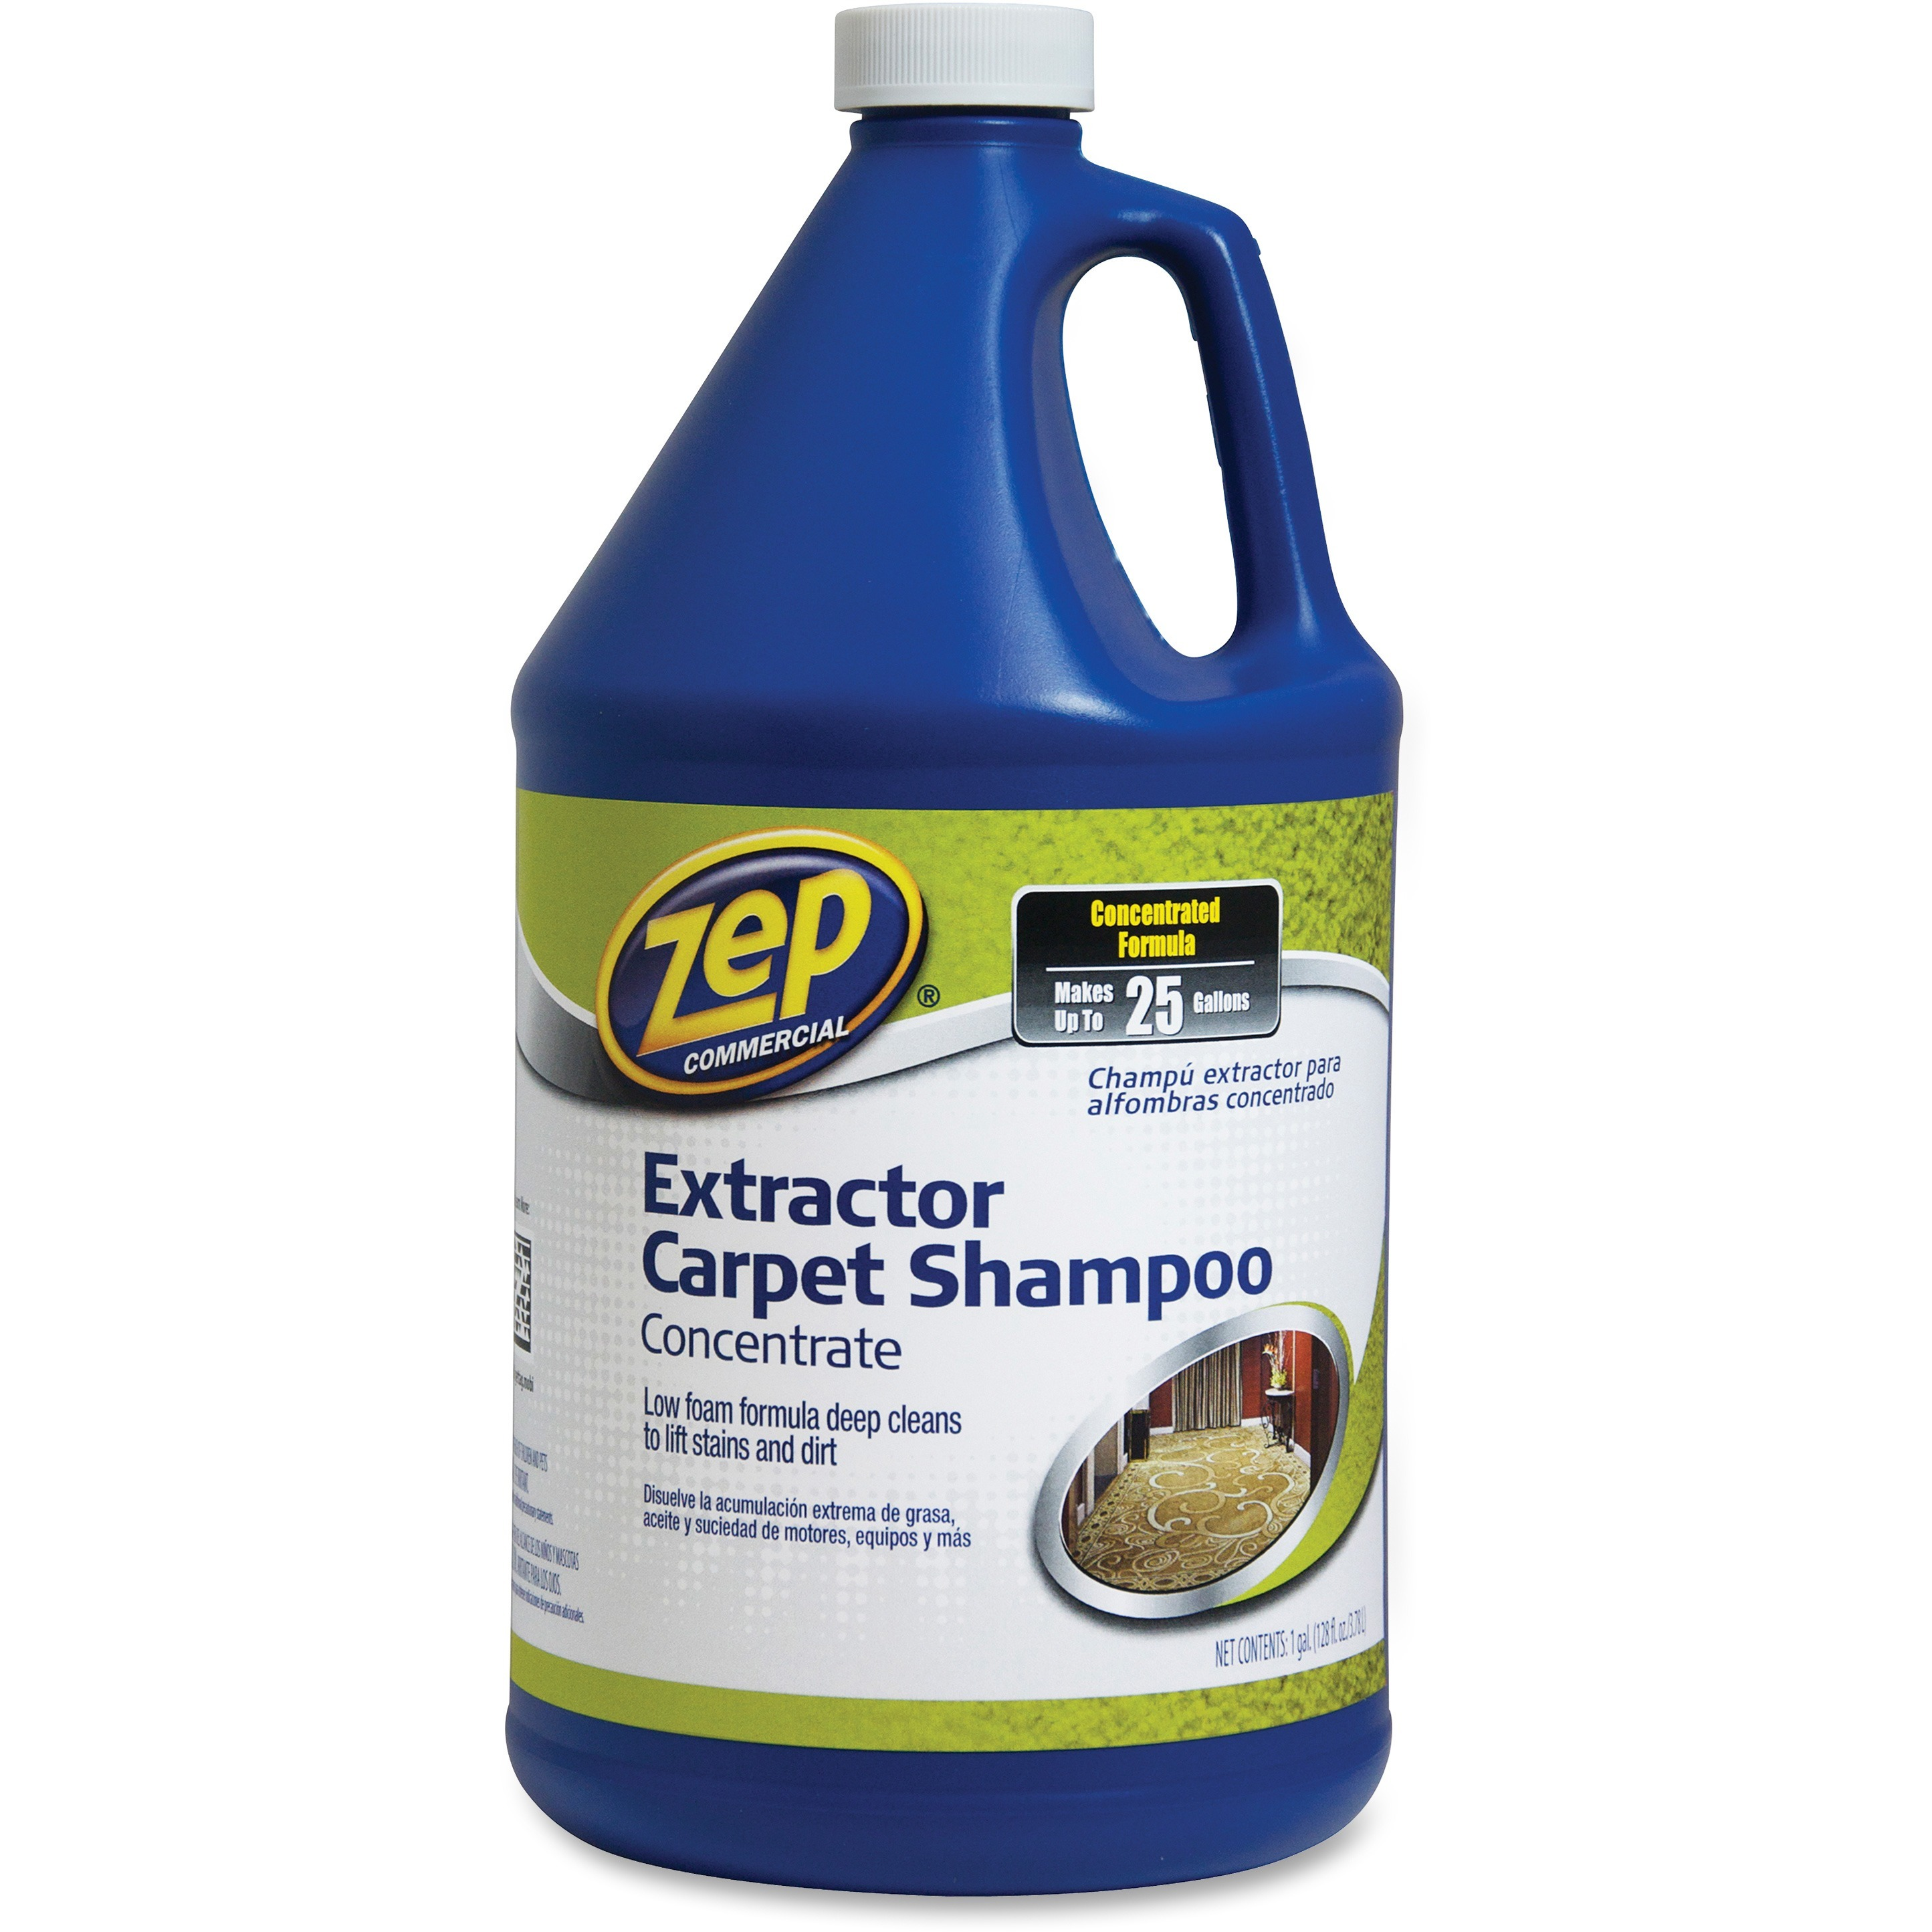 Zep Commercial Zpe1041690 Extractor Carpet Shampoo Concentrate 1 Each Blue Walmart Com Walmart Com